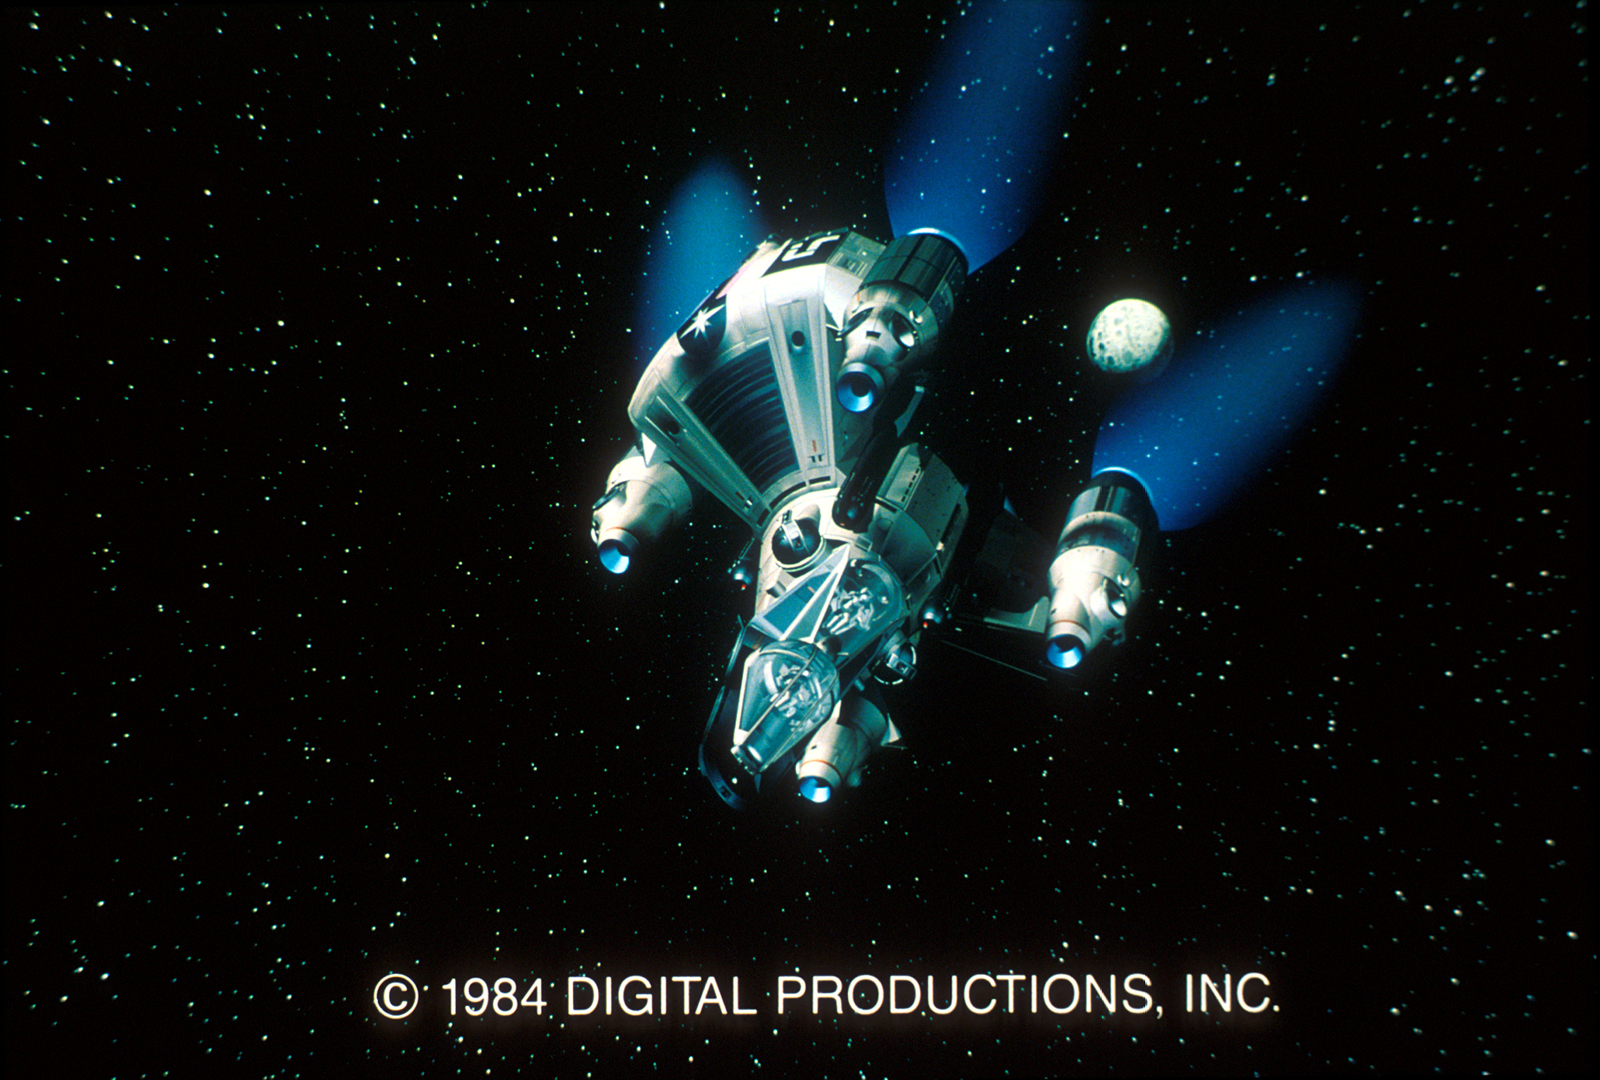 ©, Digital Productions, Inc., Starfighter